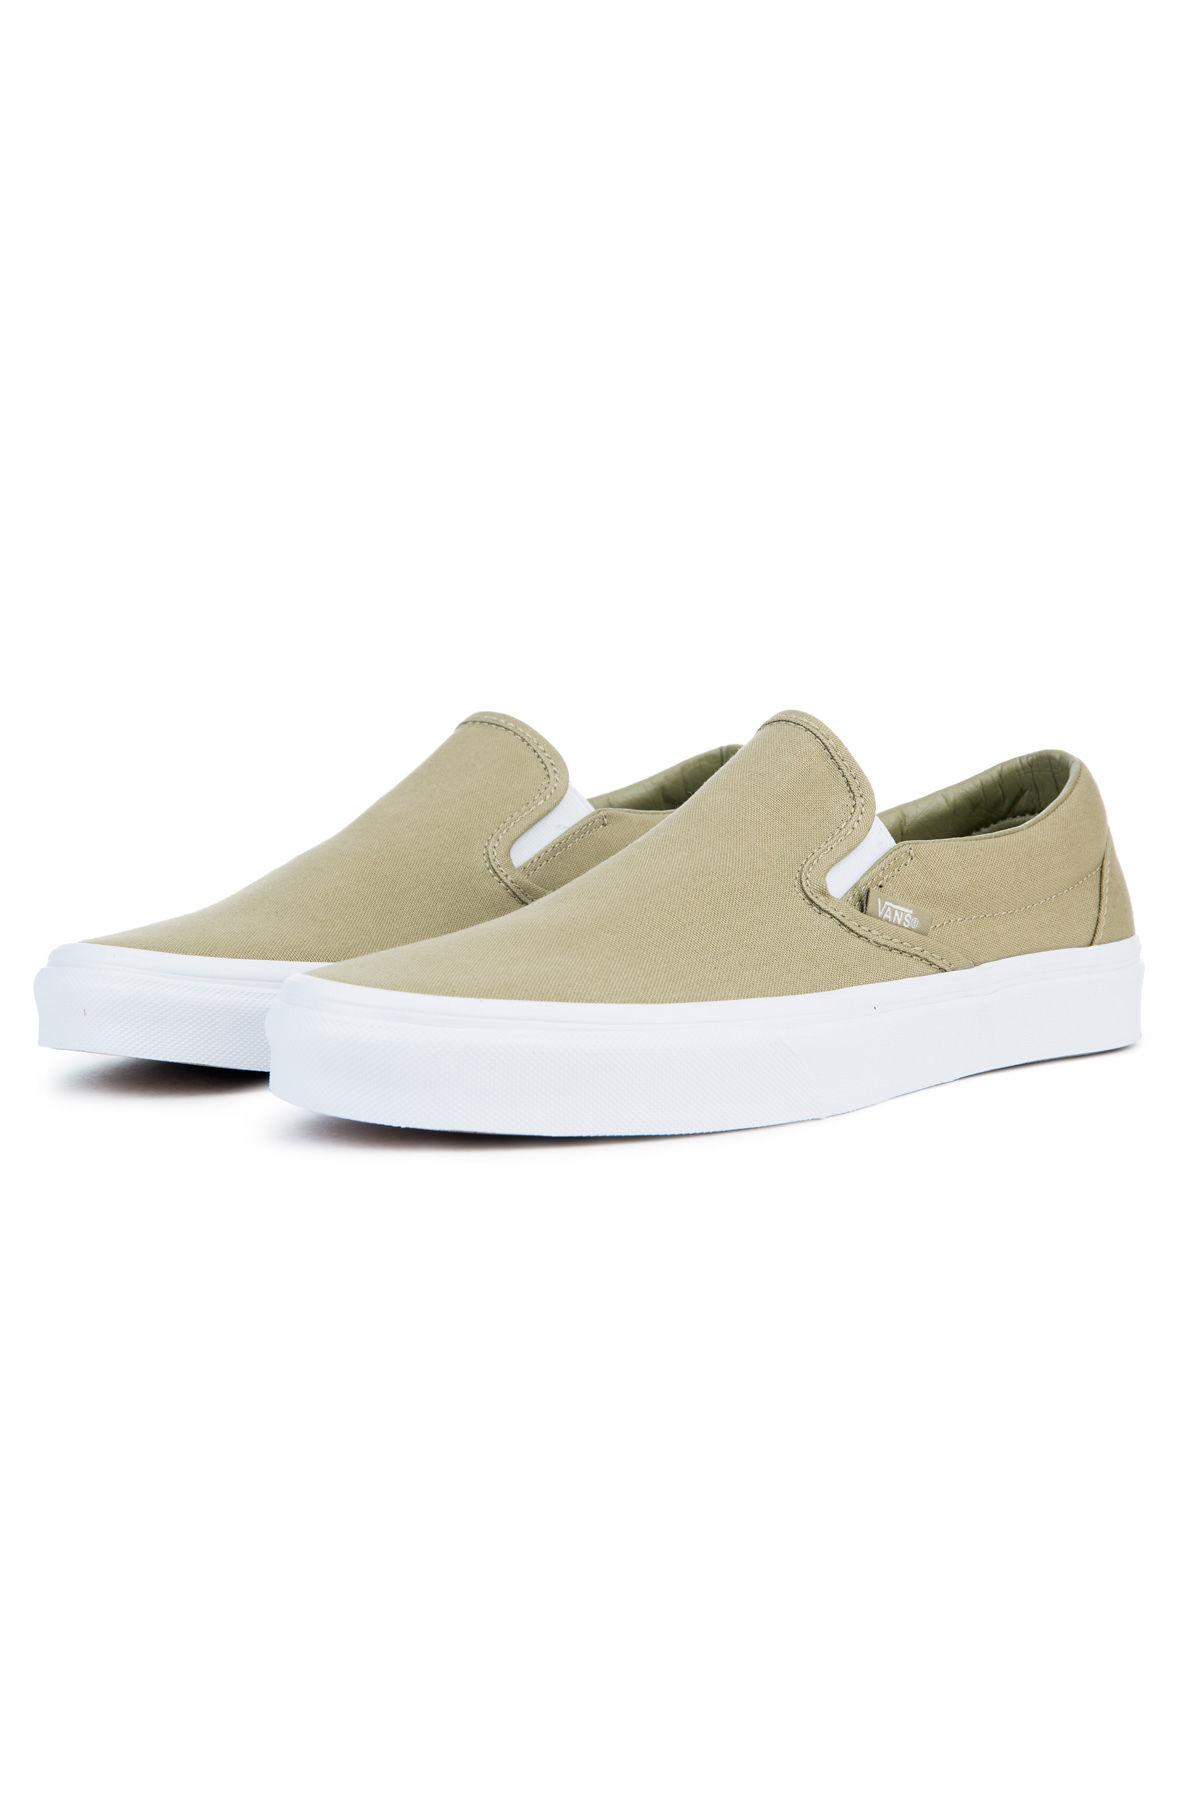 5ede6db95aa Mono The Slip Green In Classic Men s Lyst Boa Vans Canvas On Fxq7P7YI5w